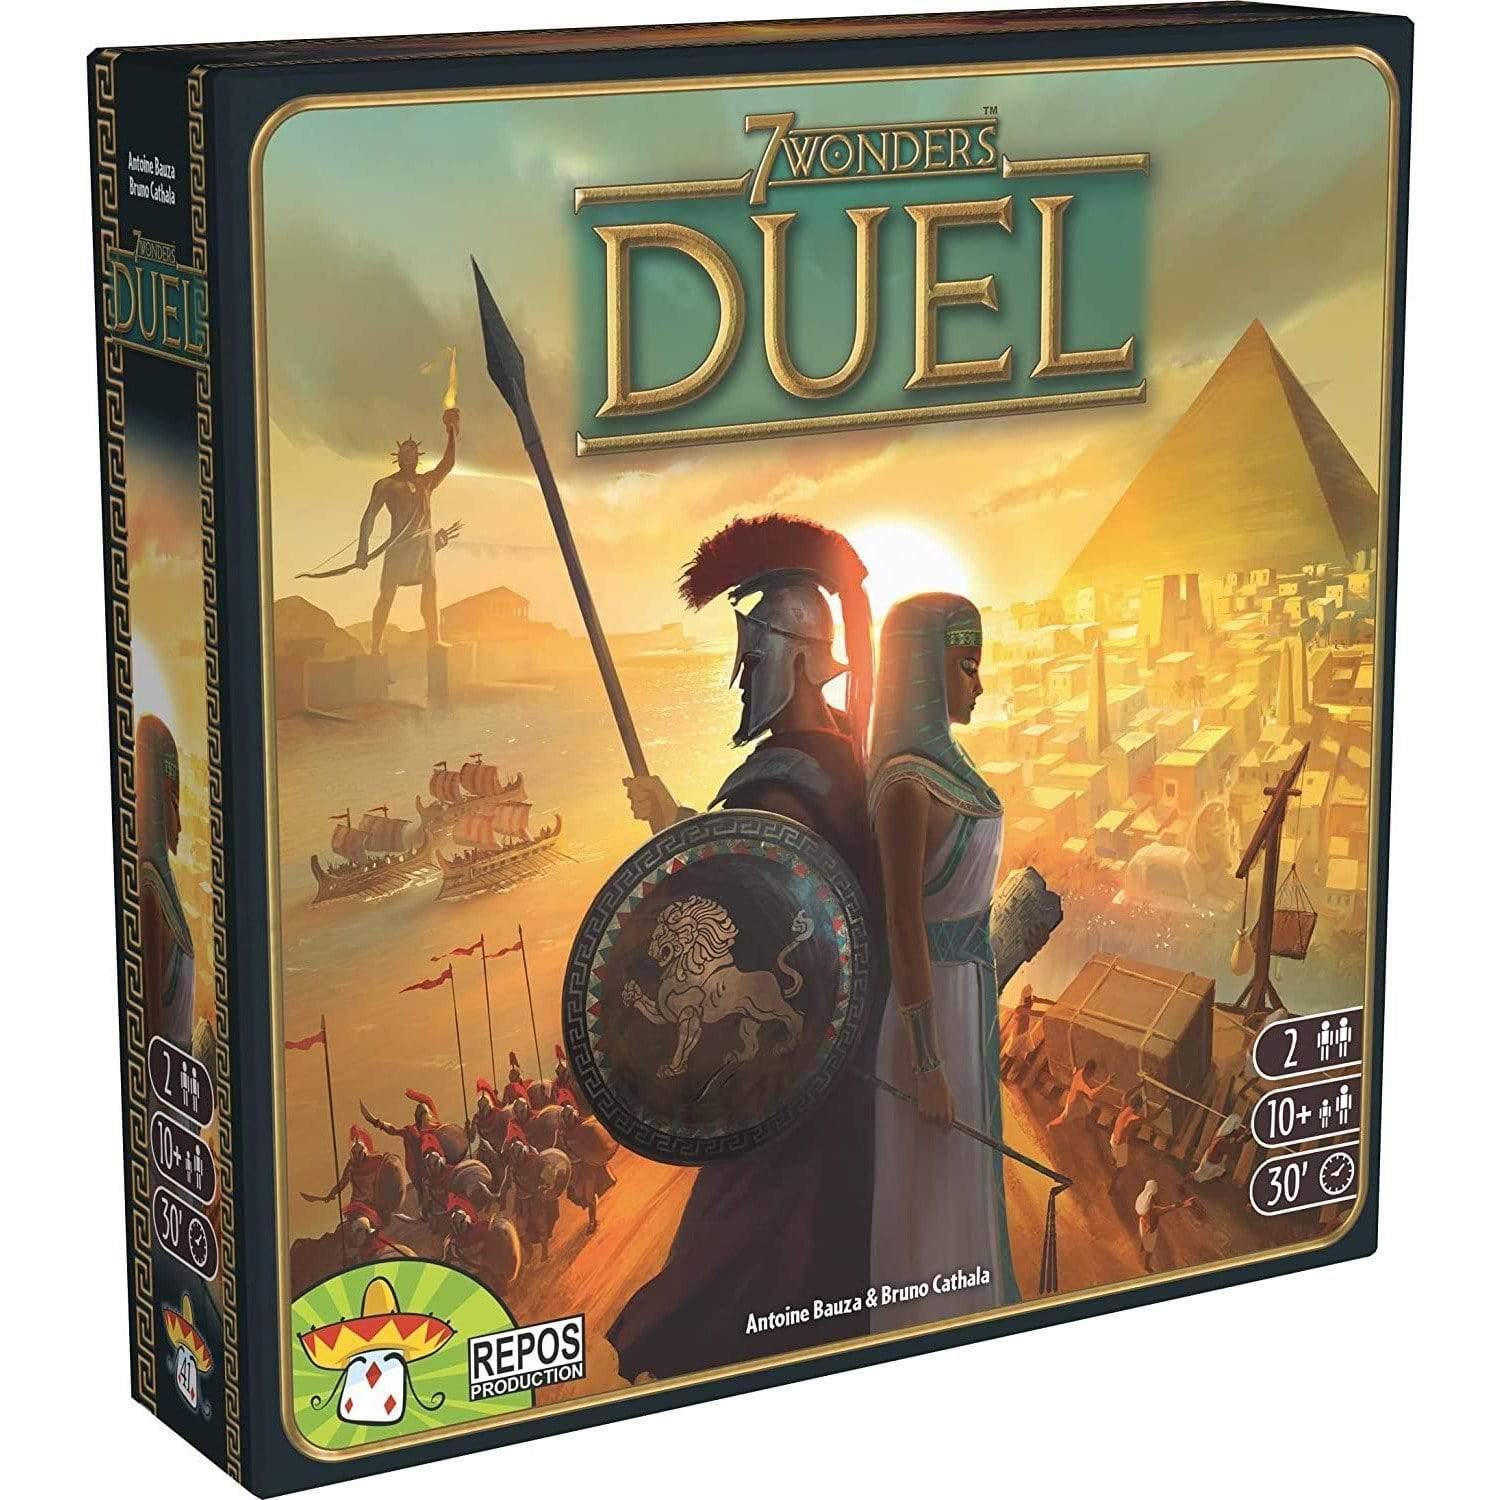 7 Wonders: Duel Asmodee Board Games